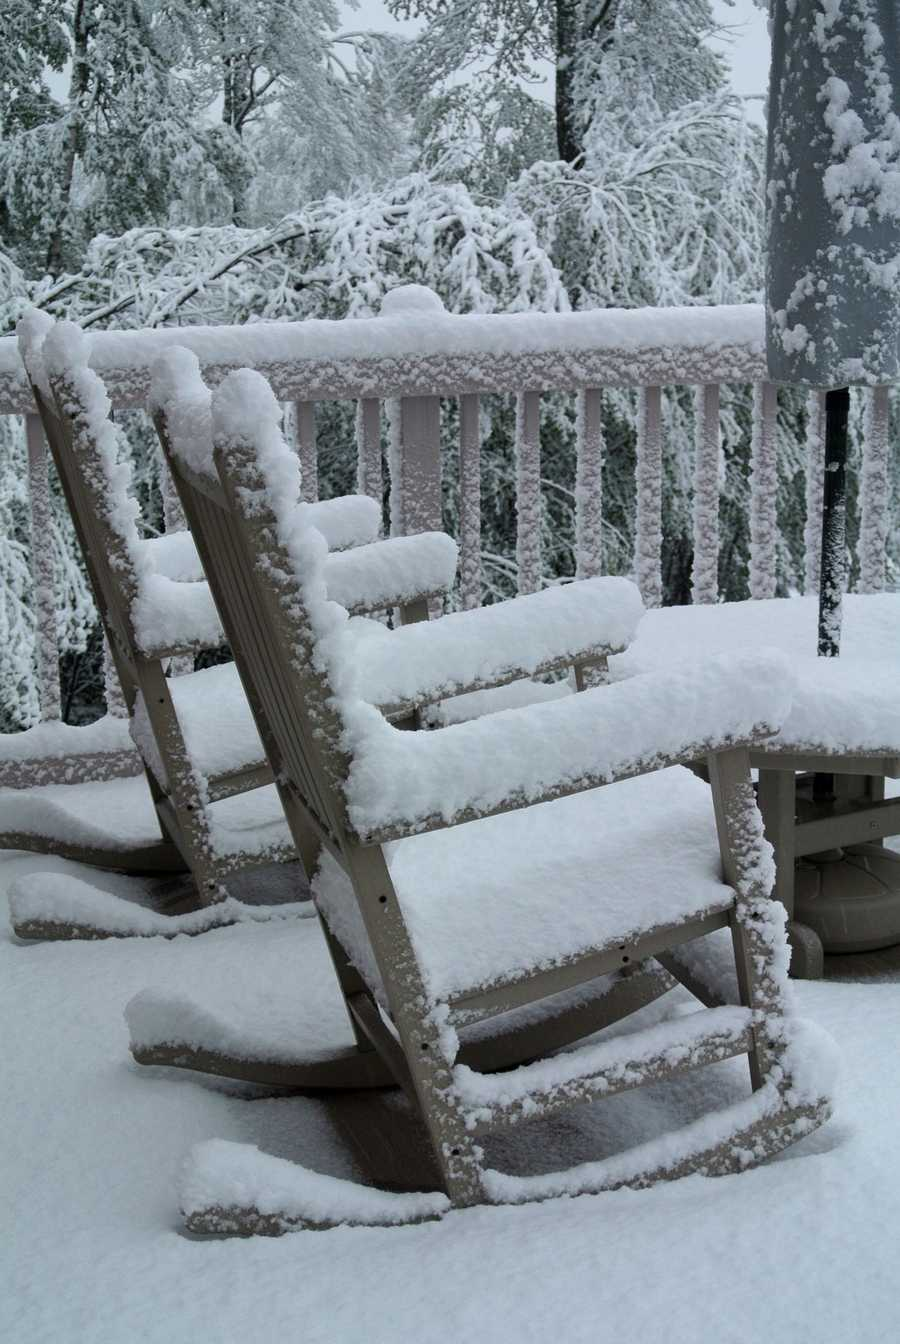 These deck chairs are covered with snow in Bretton Woods.